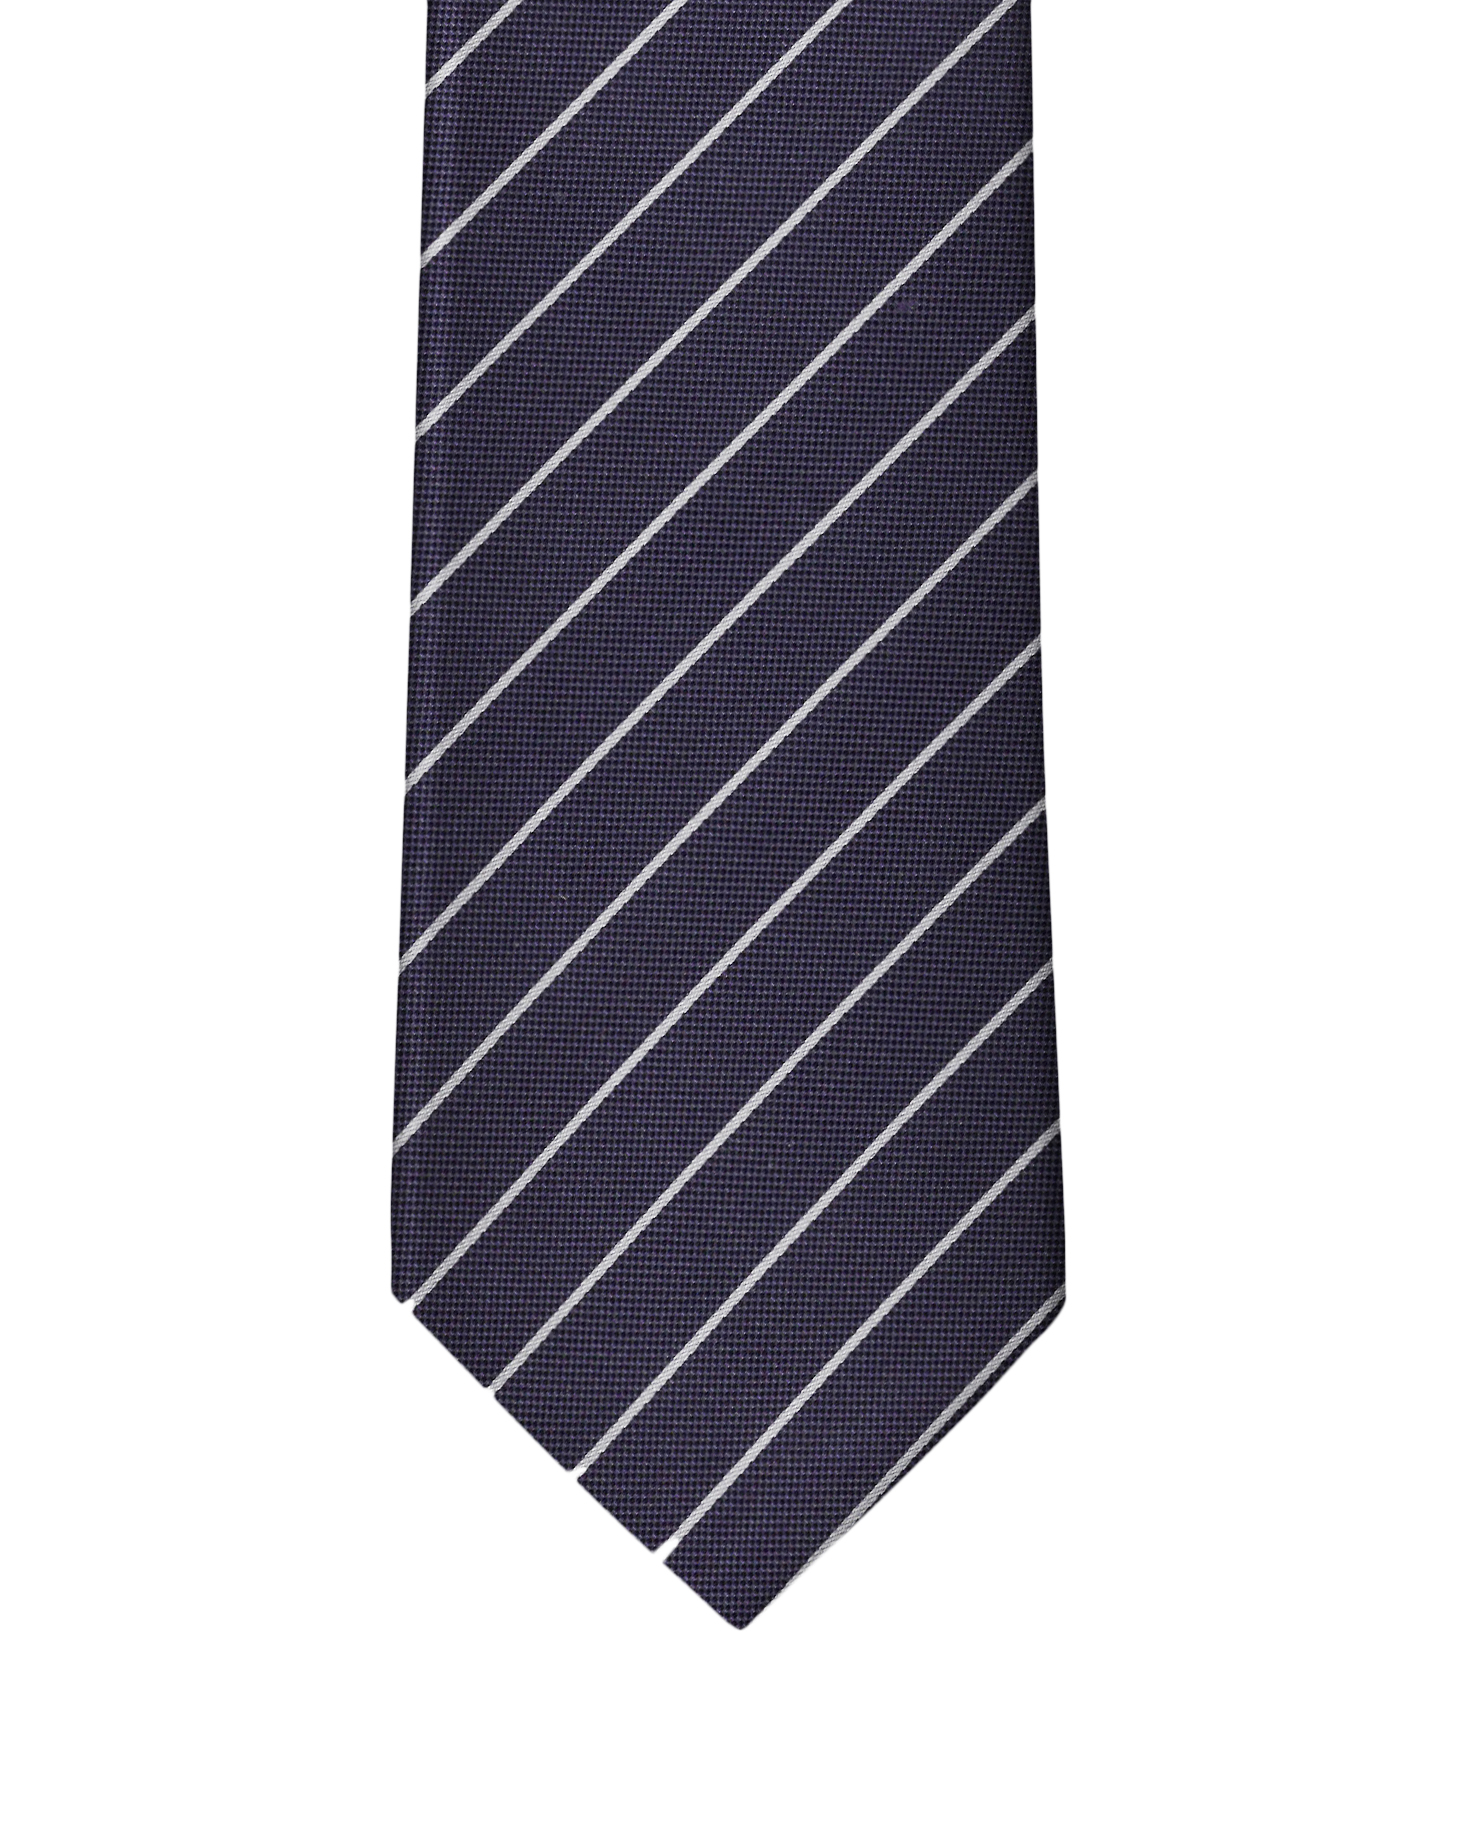 Dark Purple Pin Stripe Necktie